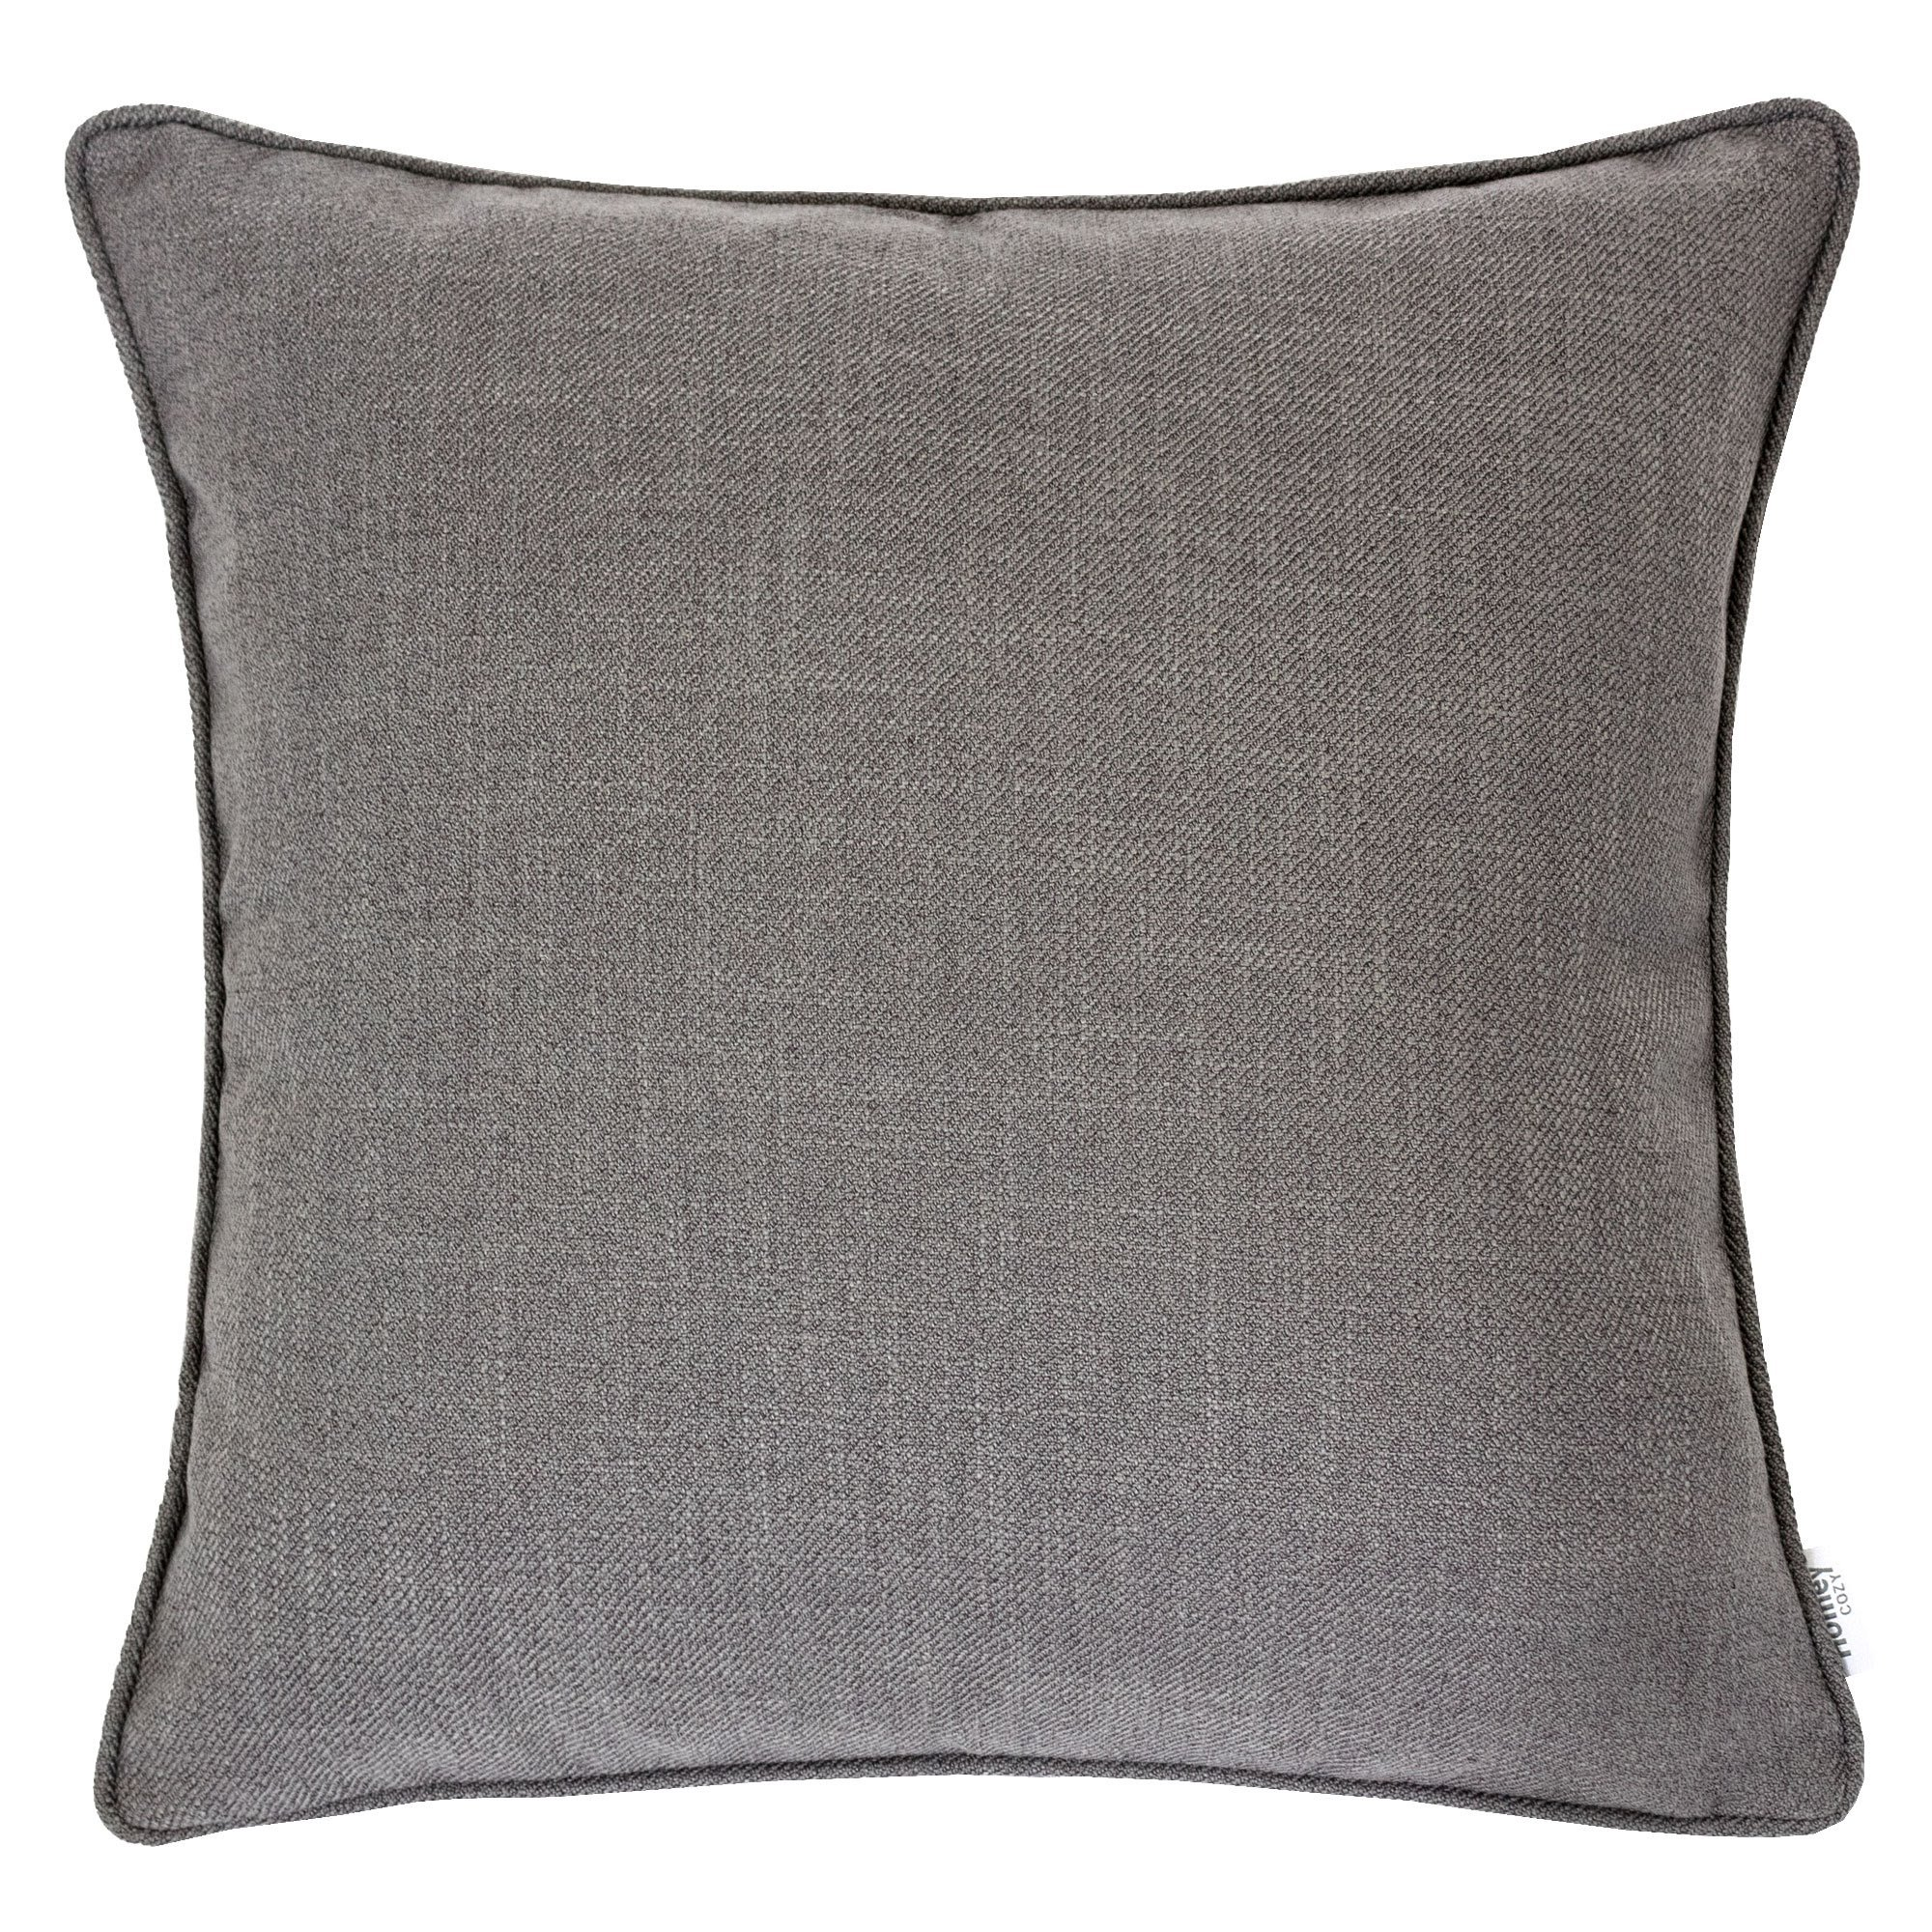 Homey Cozy Linen Textured Throw Pillow Cover,Linen Solid Series Gray Large Sofa Couch Decorative Pillow Case Western Home Decor 20x20, Cover Only